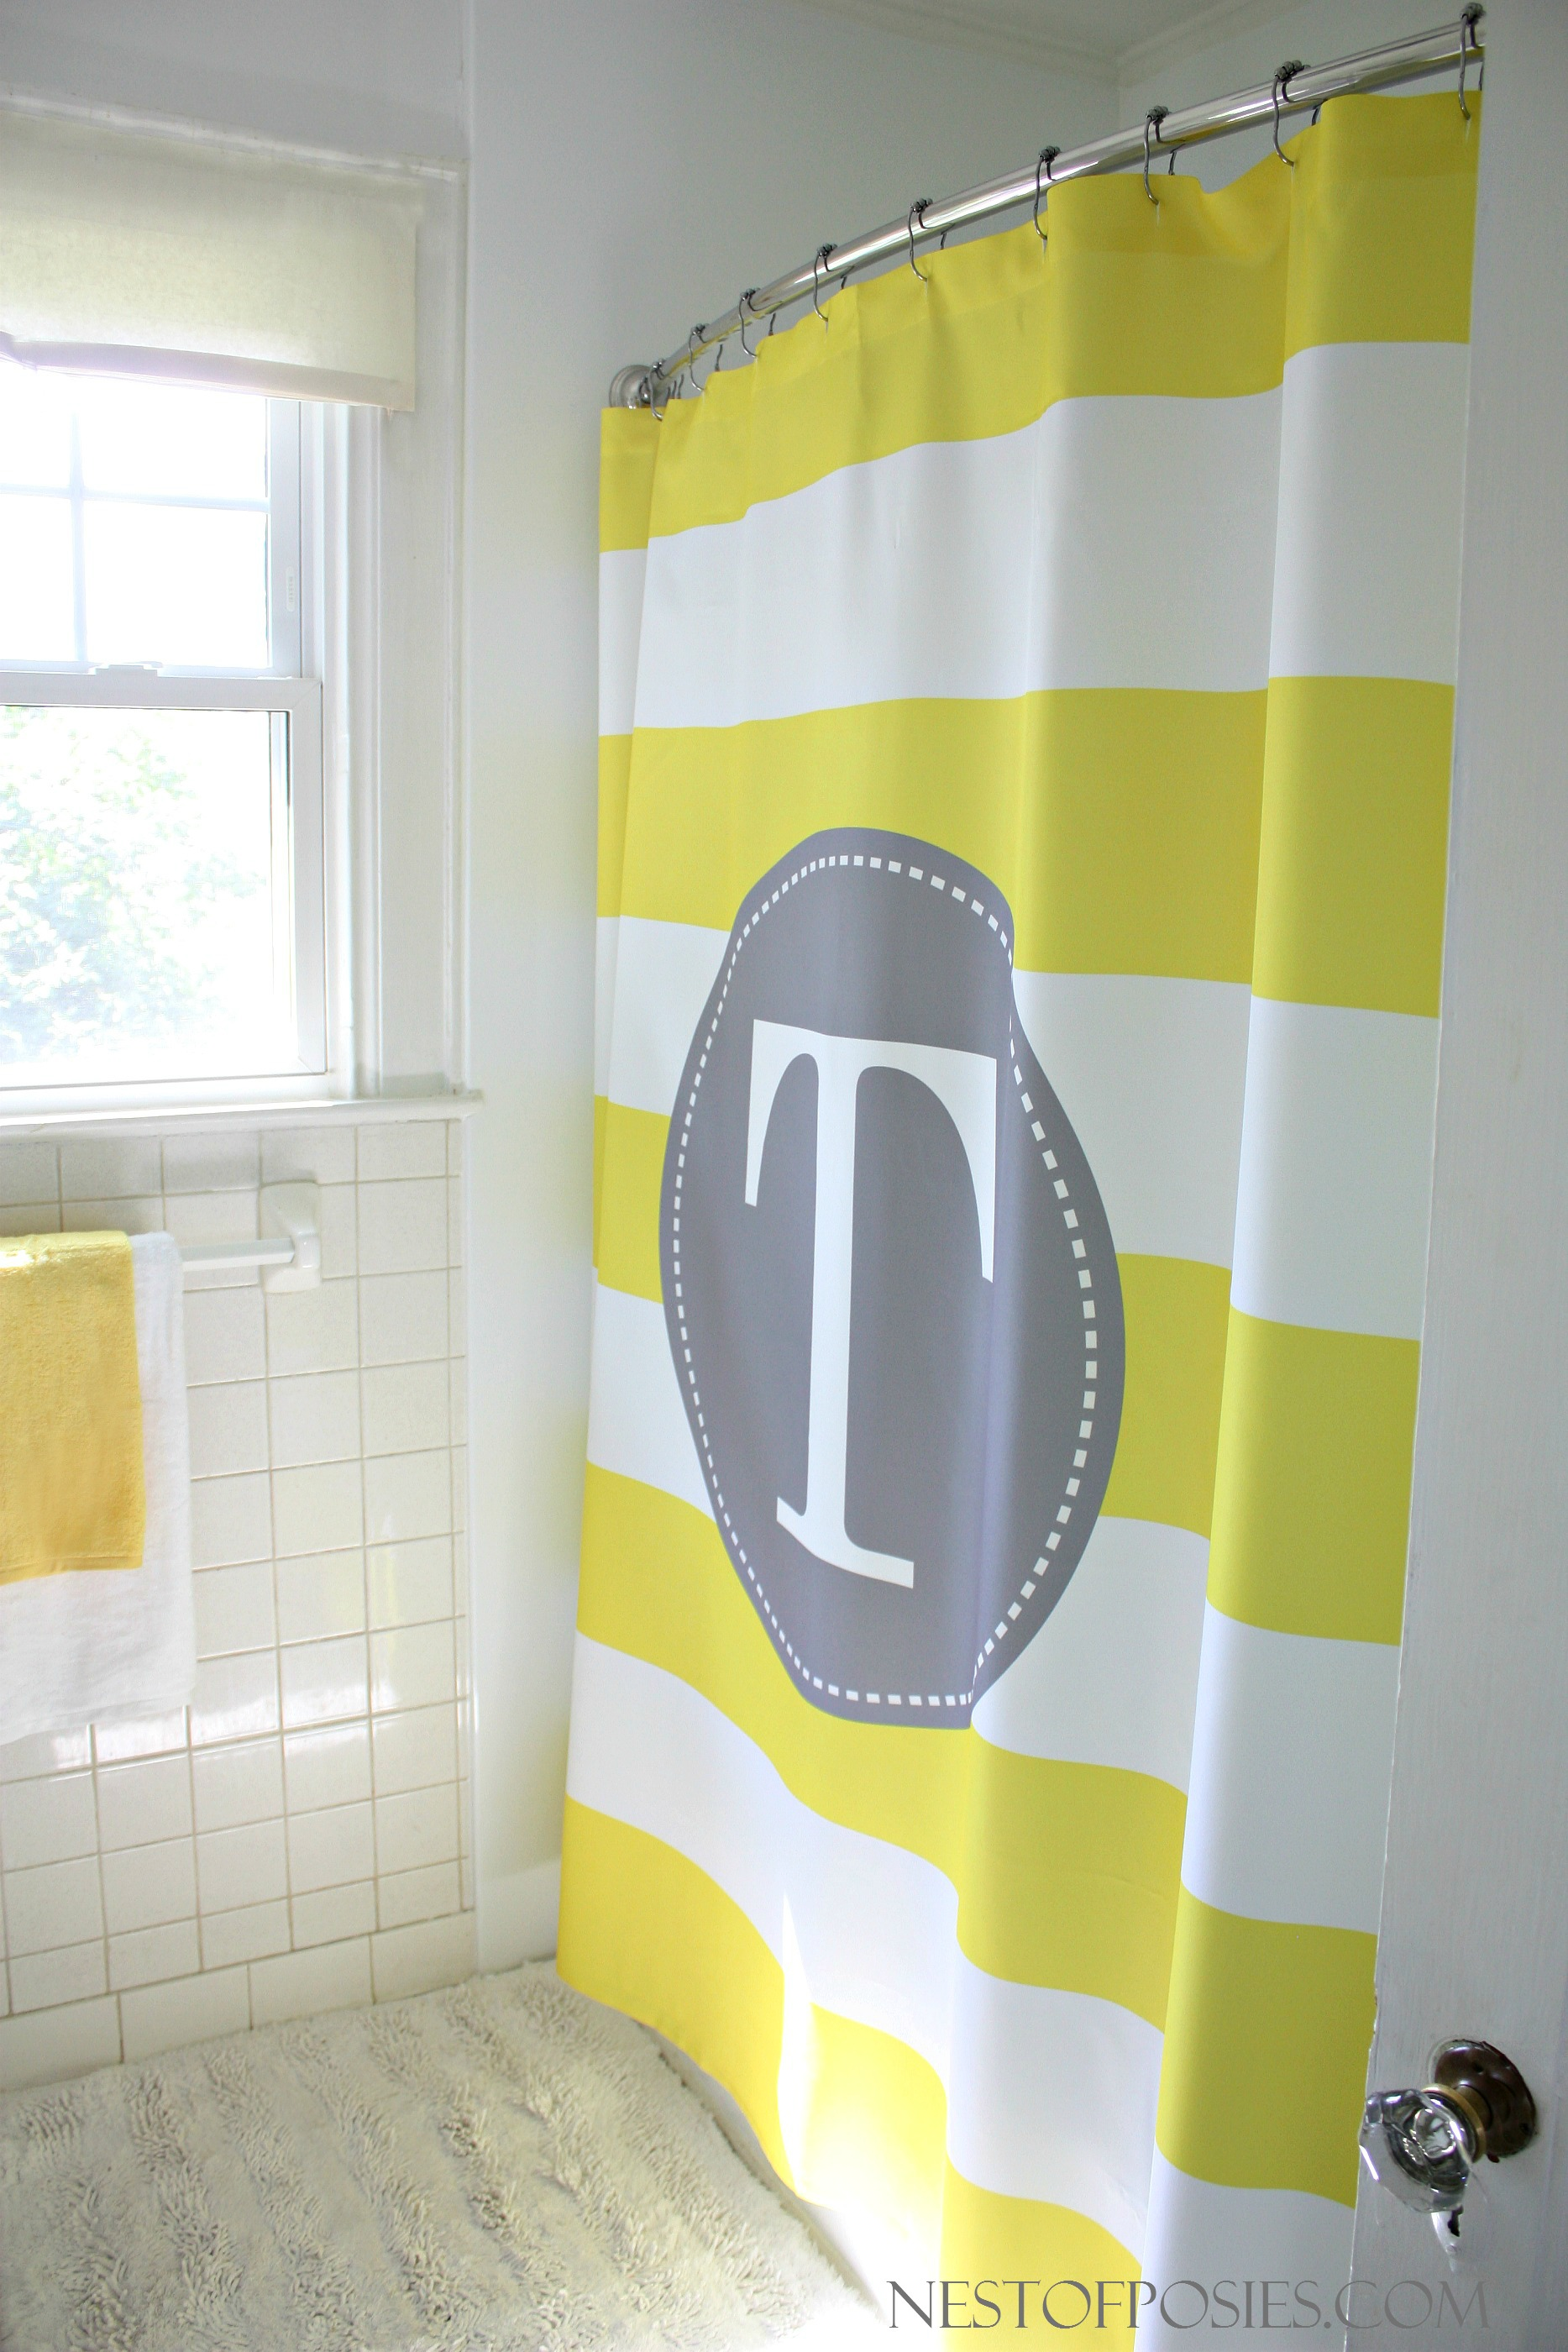 Awesome Monogrammed Shower Curtain With Best Combination Color Design And Pattern Ideas